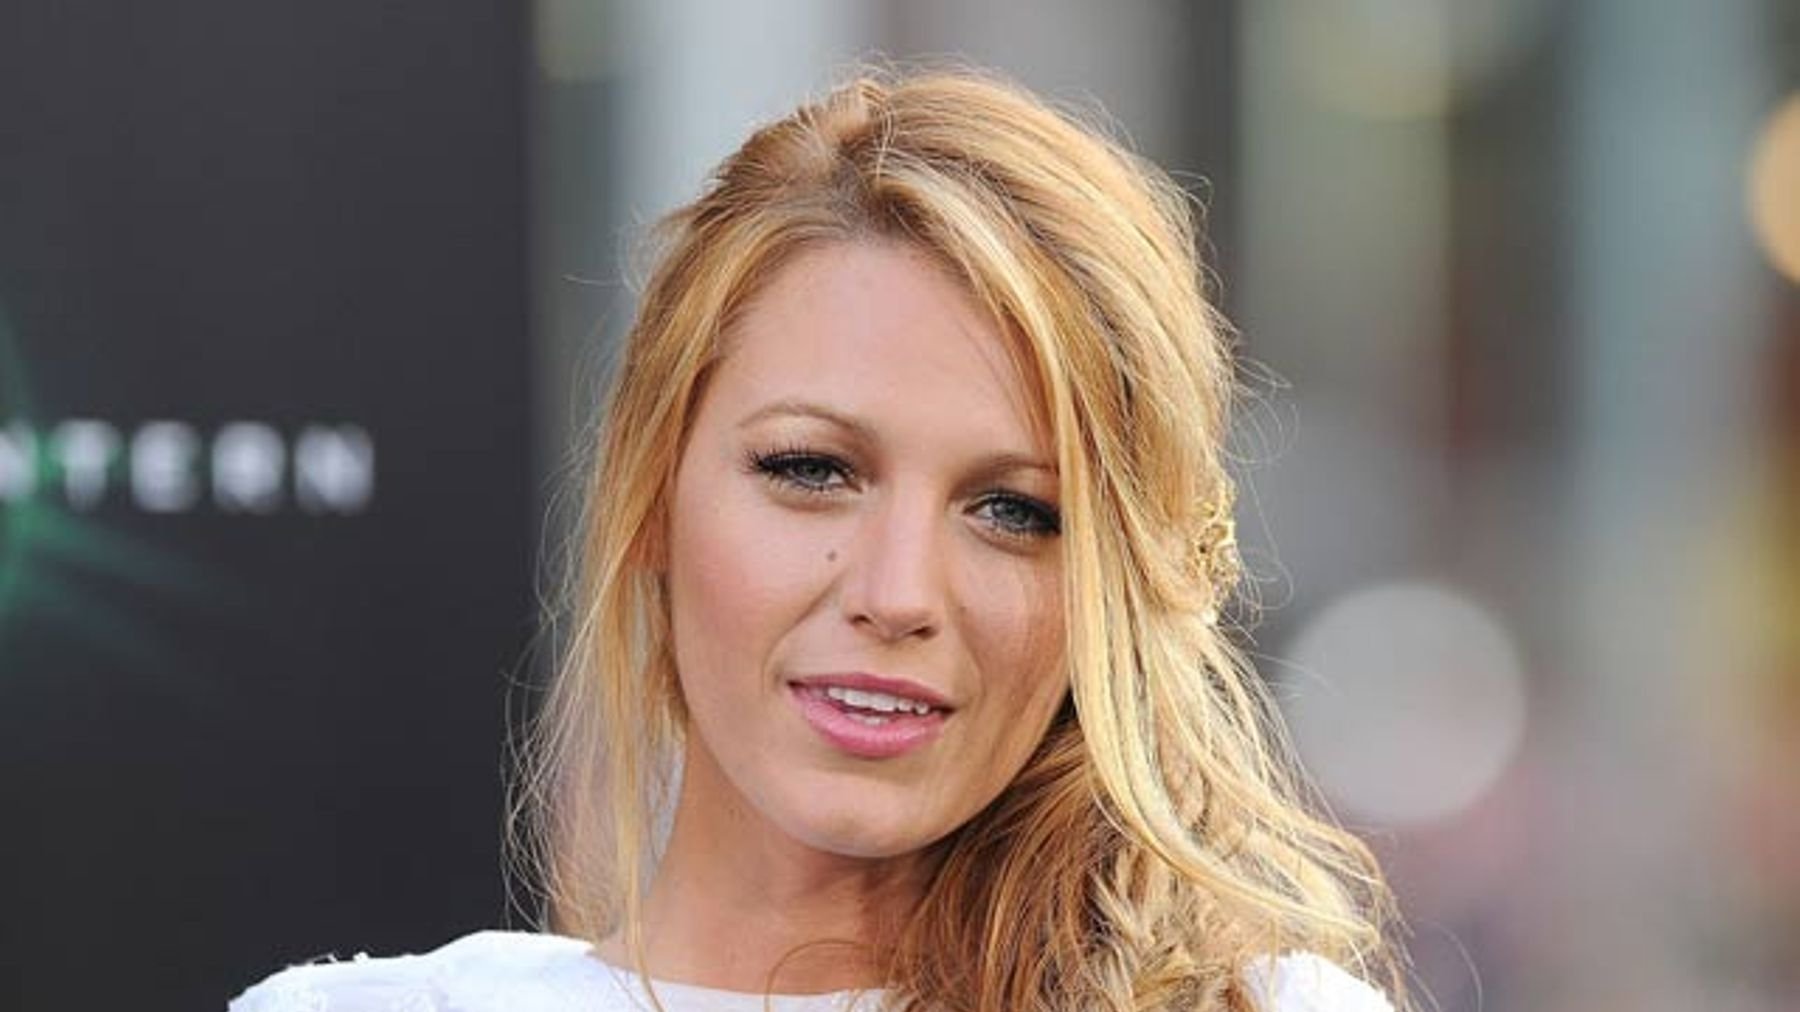 Blake Lively Wedding Dress.Everything We Know About Blake Lively S Wedding Dress Grazia